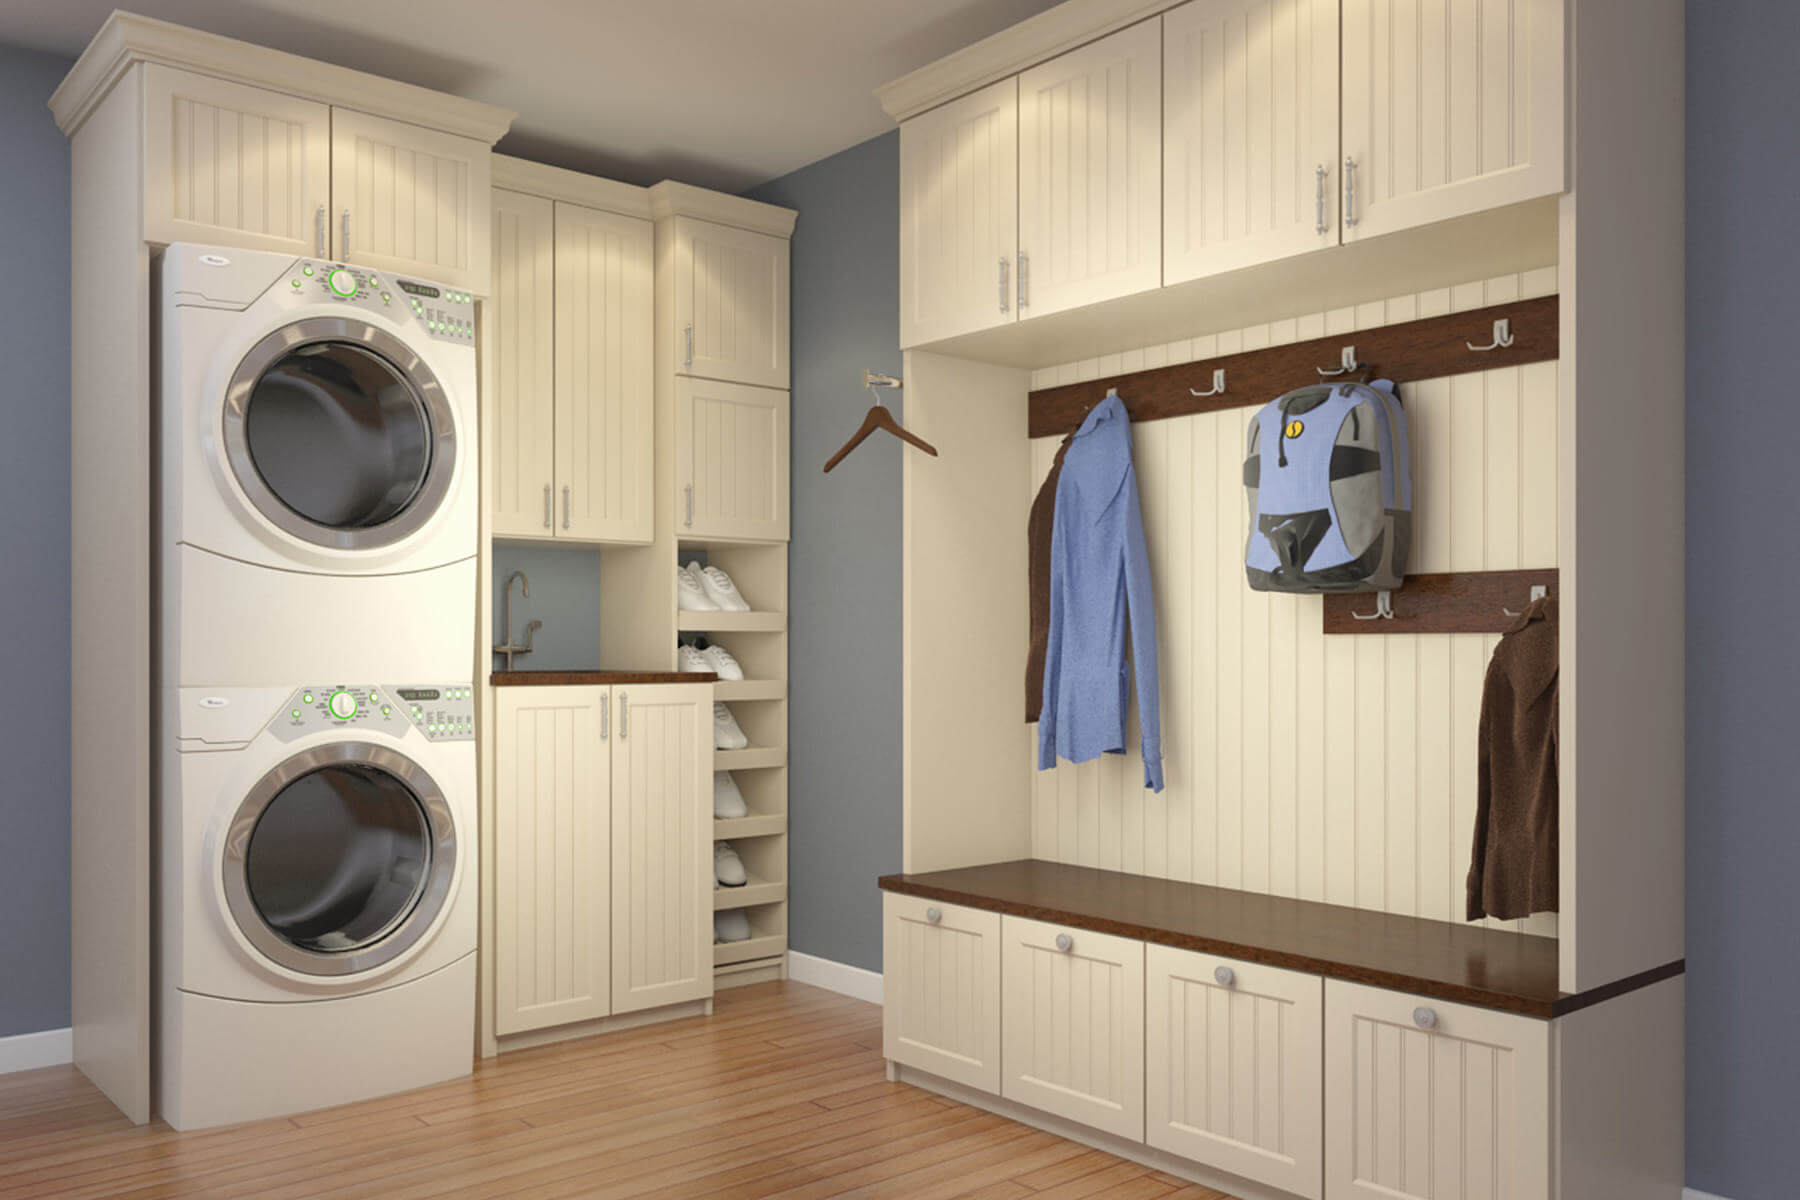 Dryers In Laundry Room